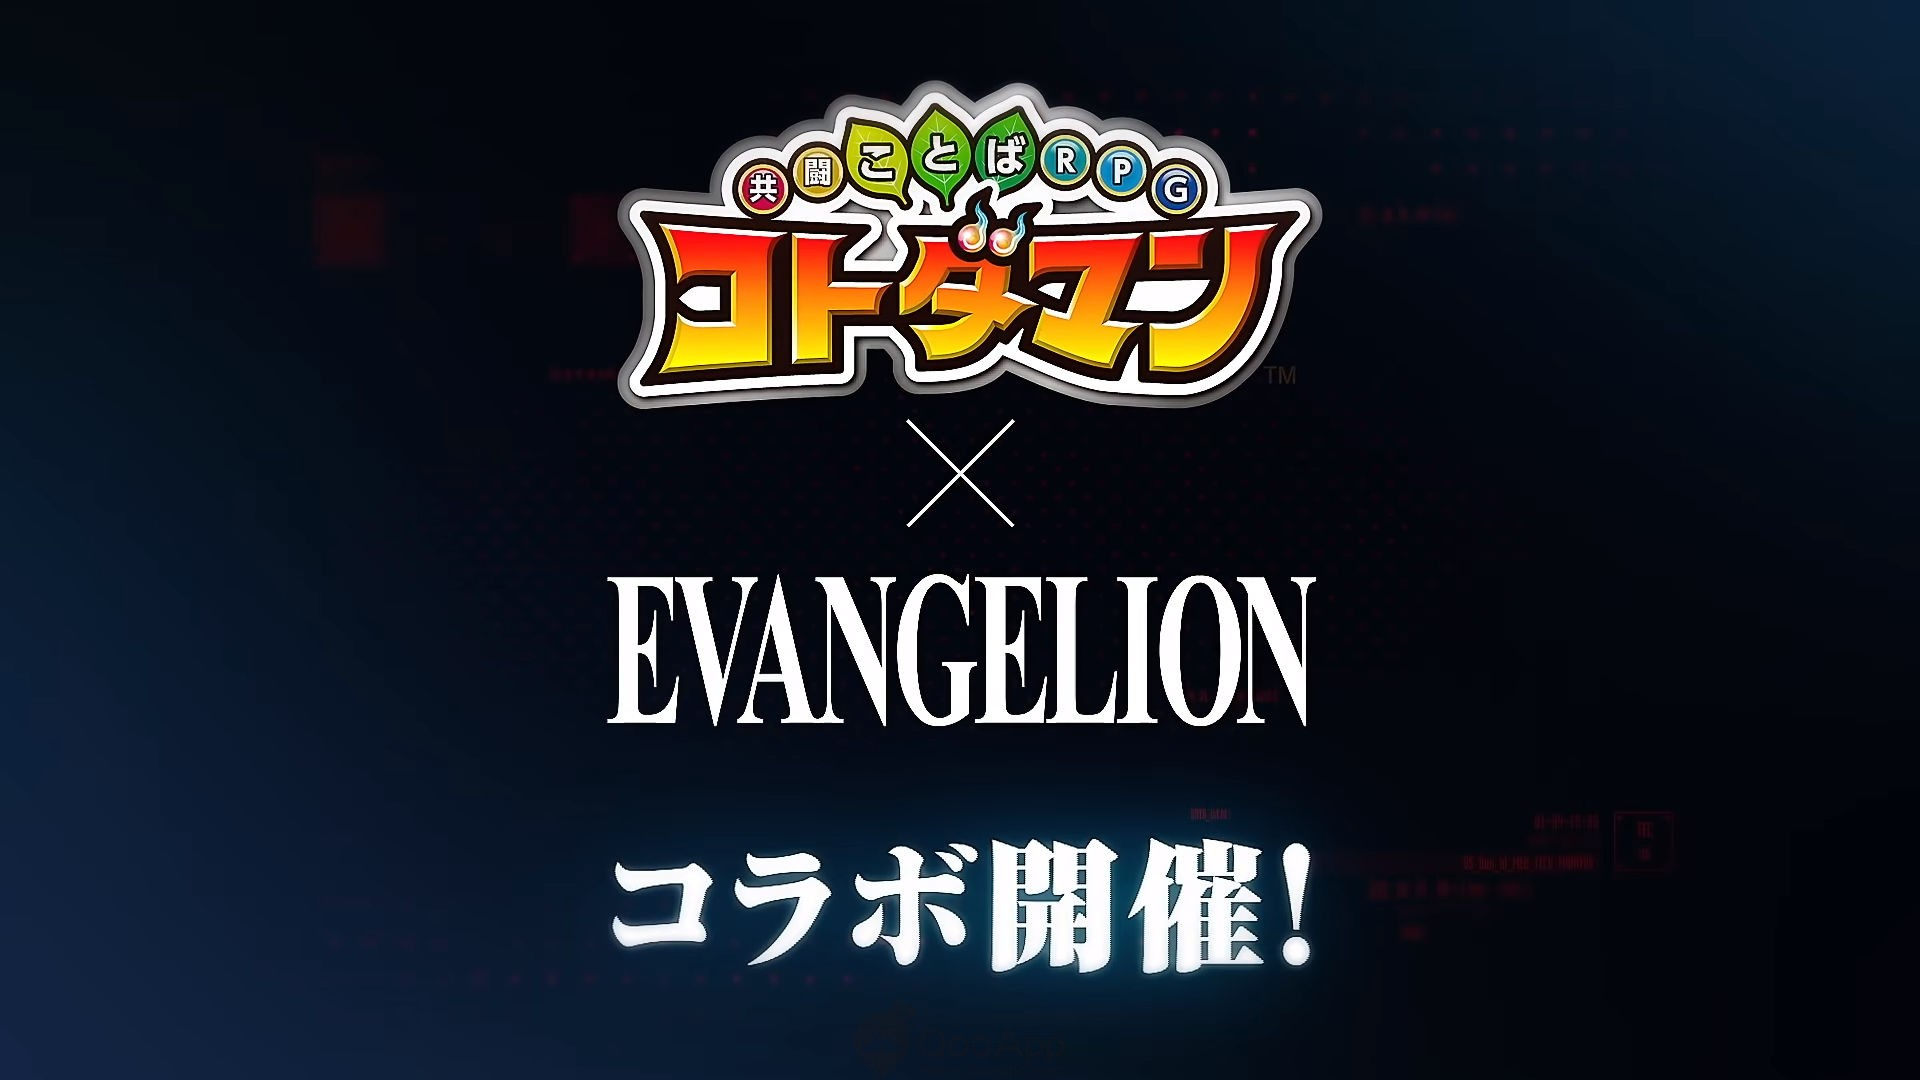 Sega's Kotodaman x EVANGELION Collaboration Kicks Off!